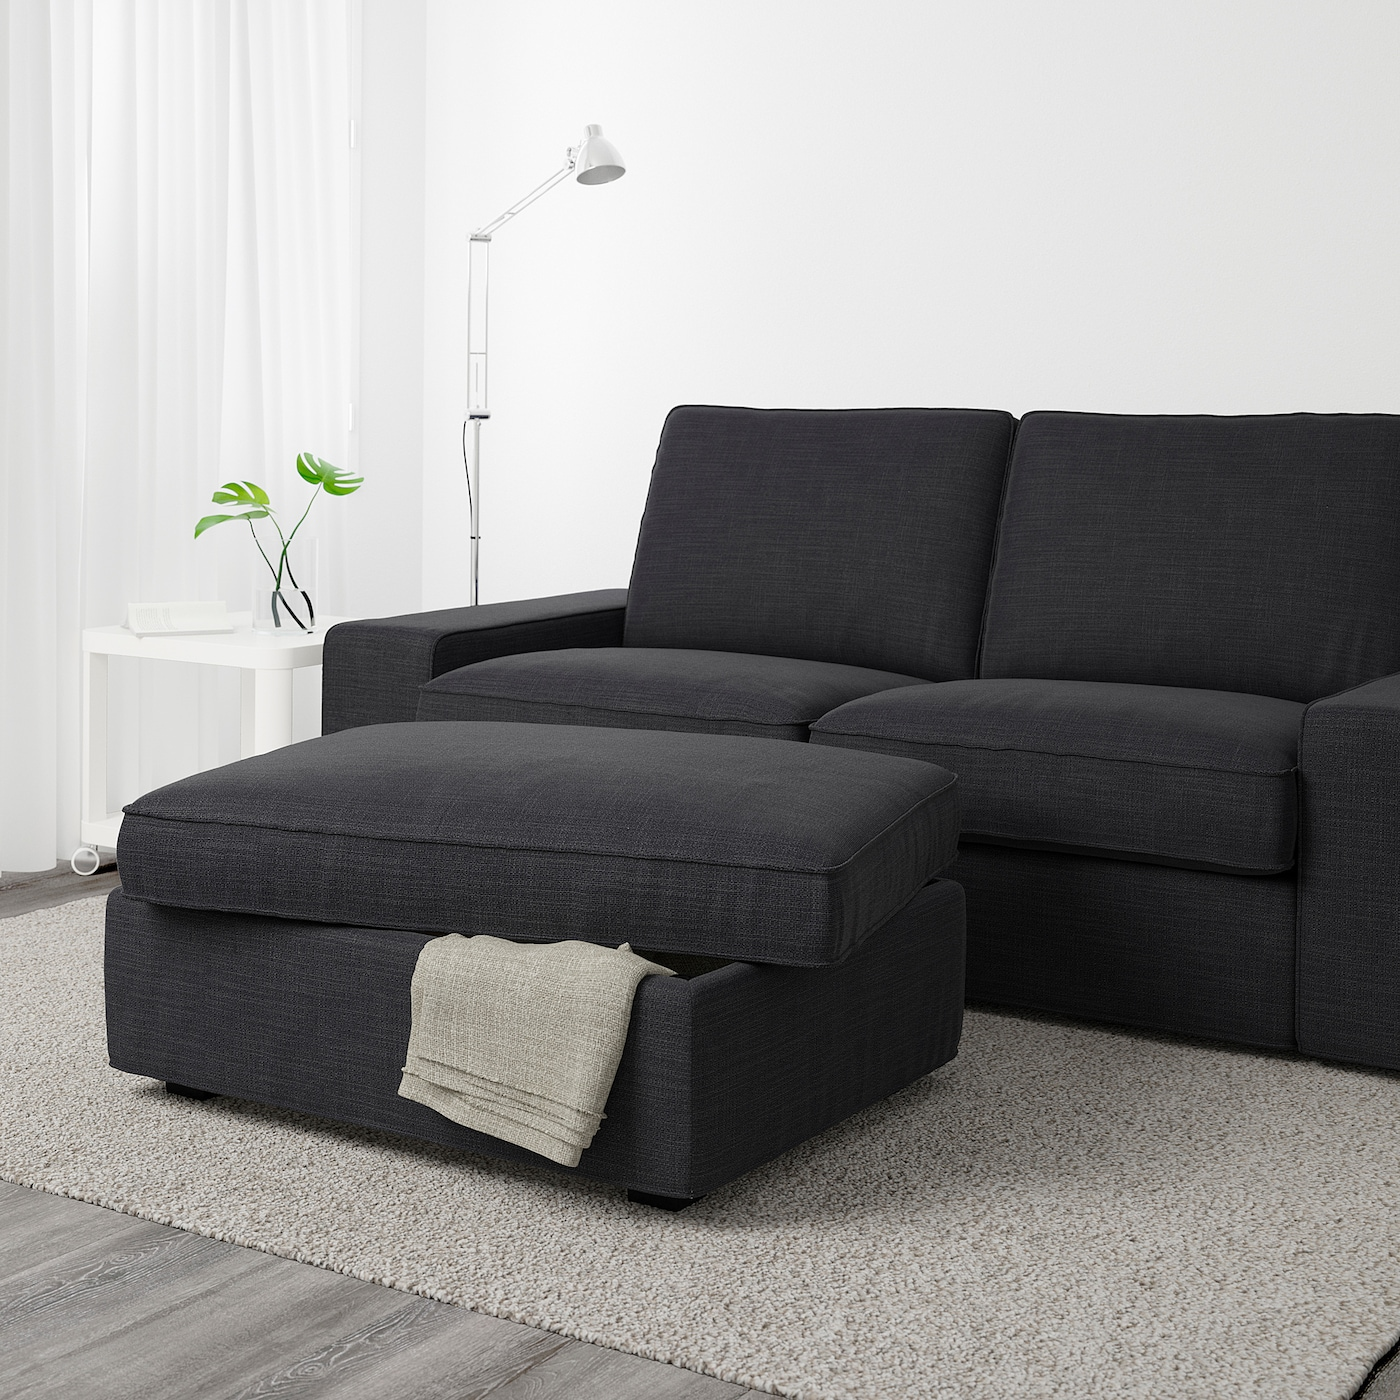 Picture of: Kivik Puf Med Opbevaring Hillared Antracit Ikea